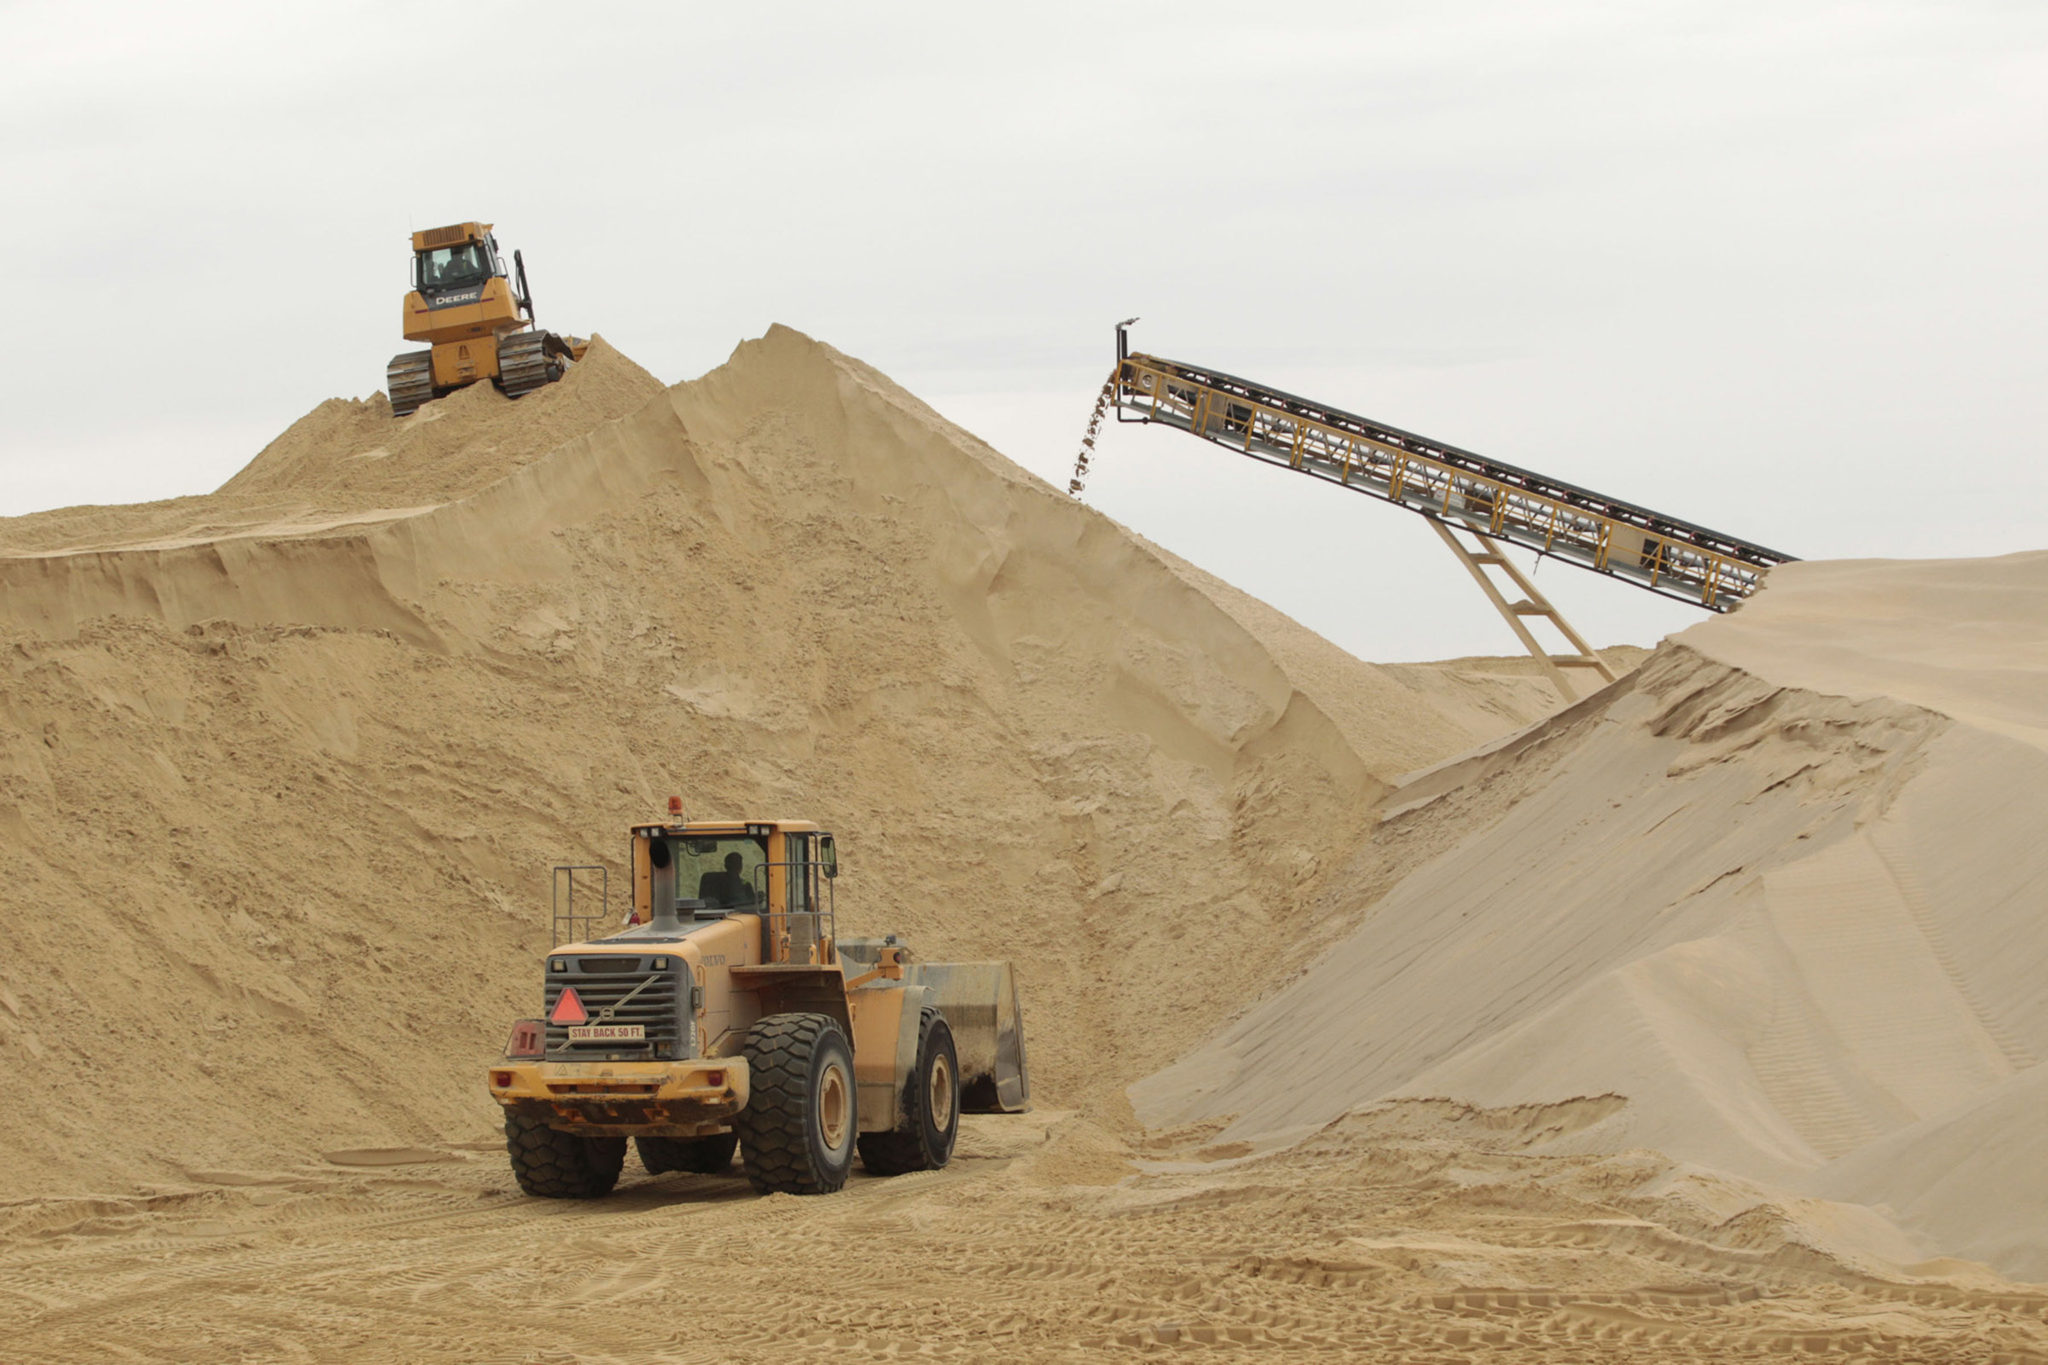 Industrial Sand processing